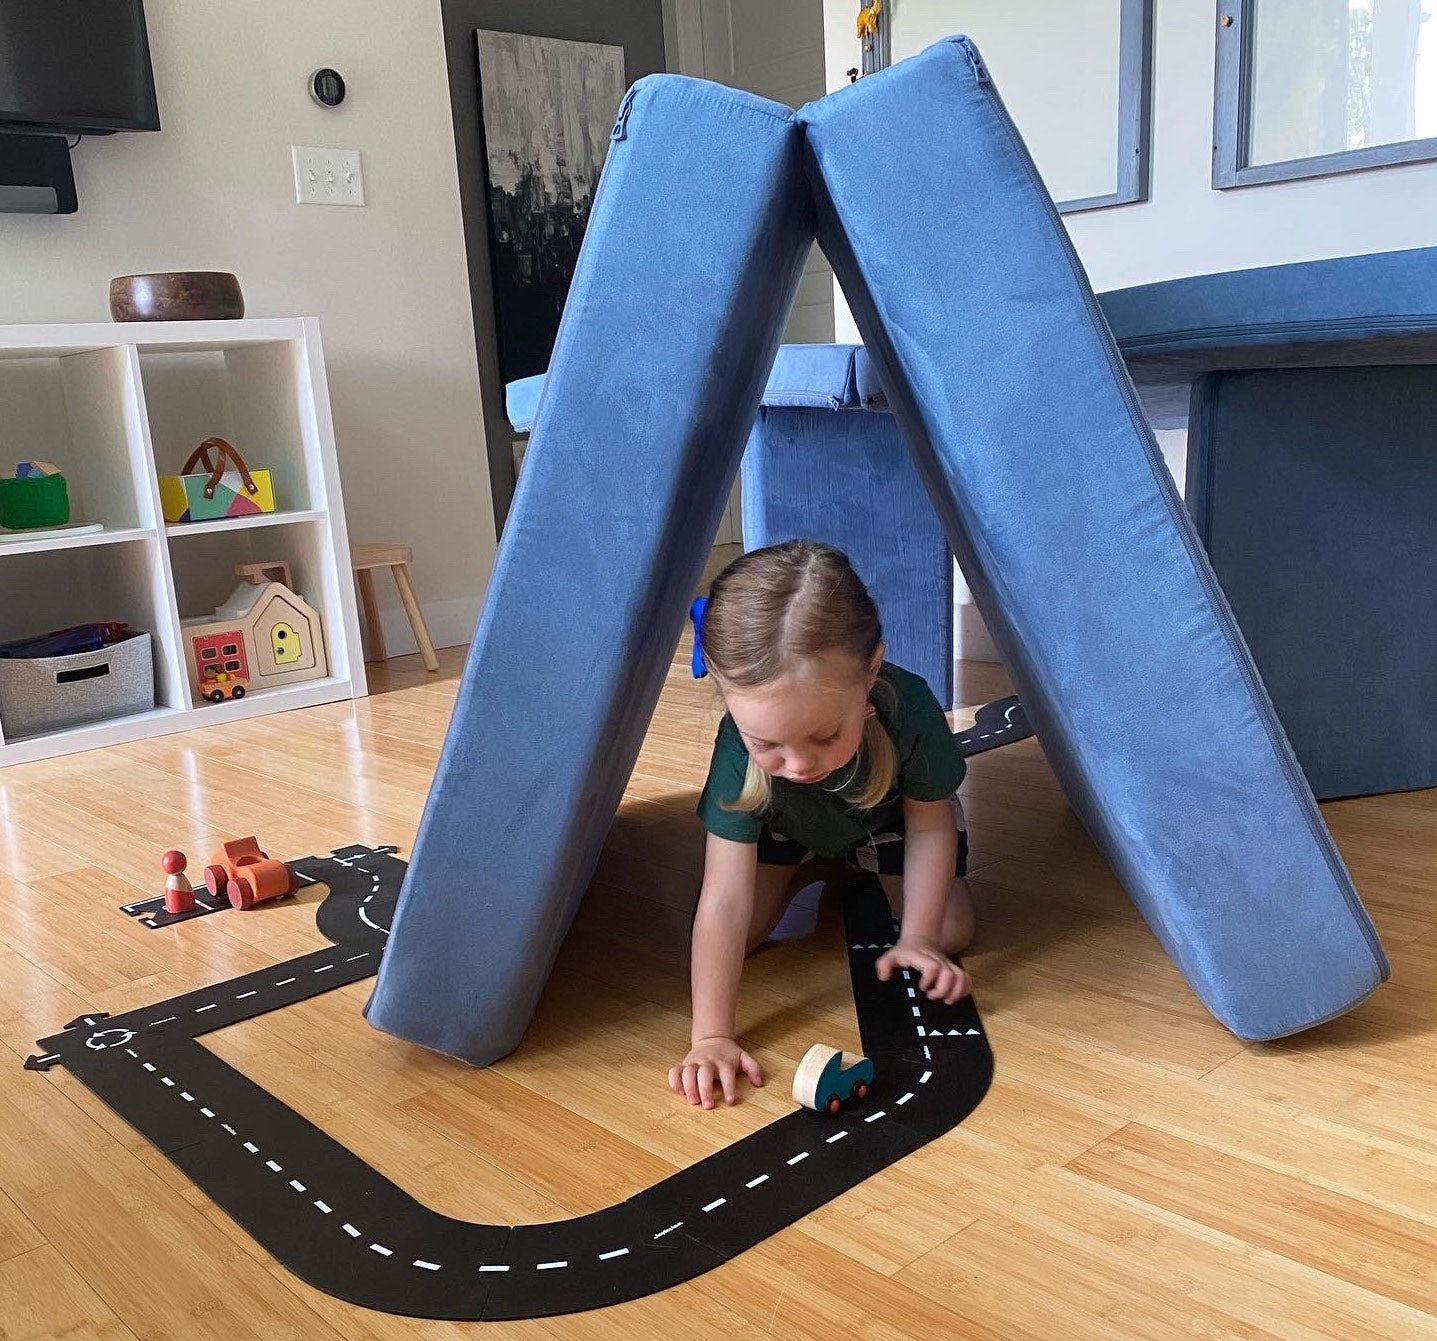 Child playing with a toy car on a toy road that goes from a parking lot, through a Nugget tunnel made by a folded over cushion and into a Nugget garage, made by stacking a flat cushion on top of two pillow pillars.